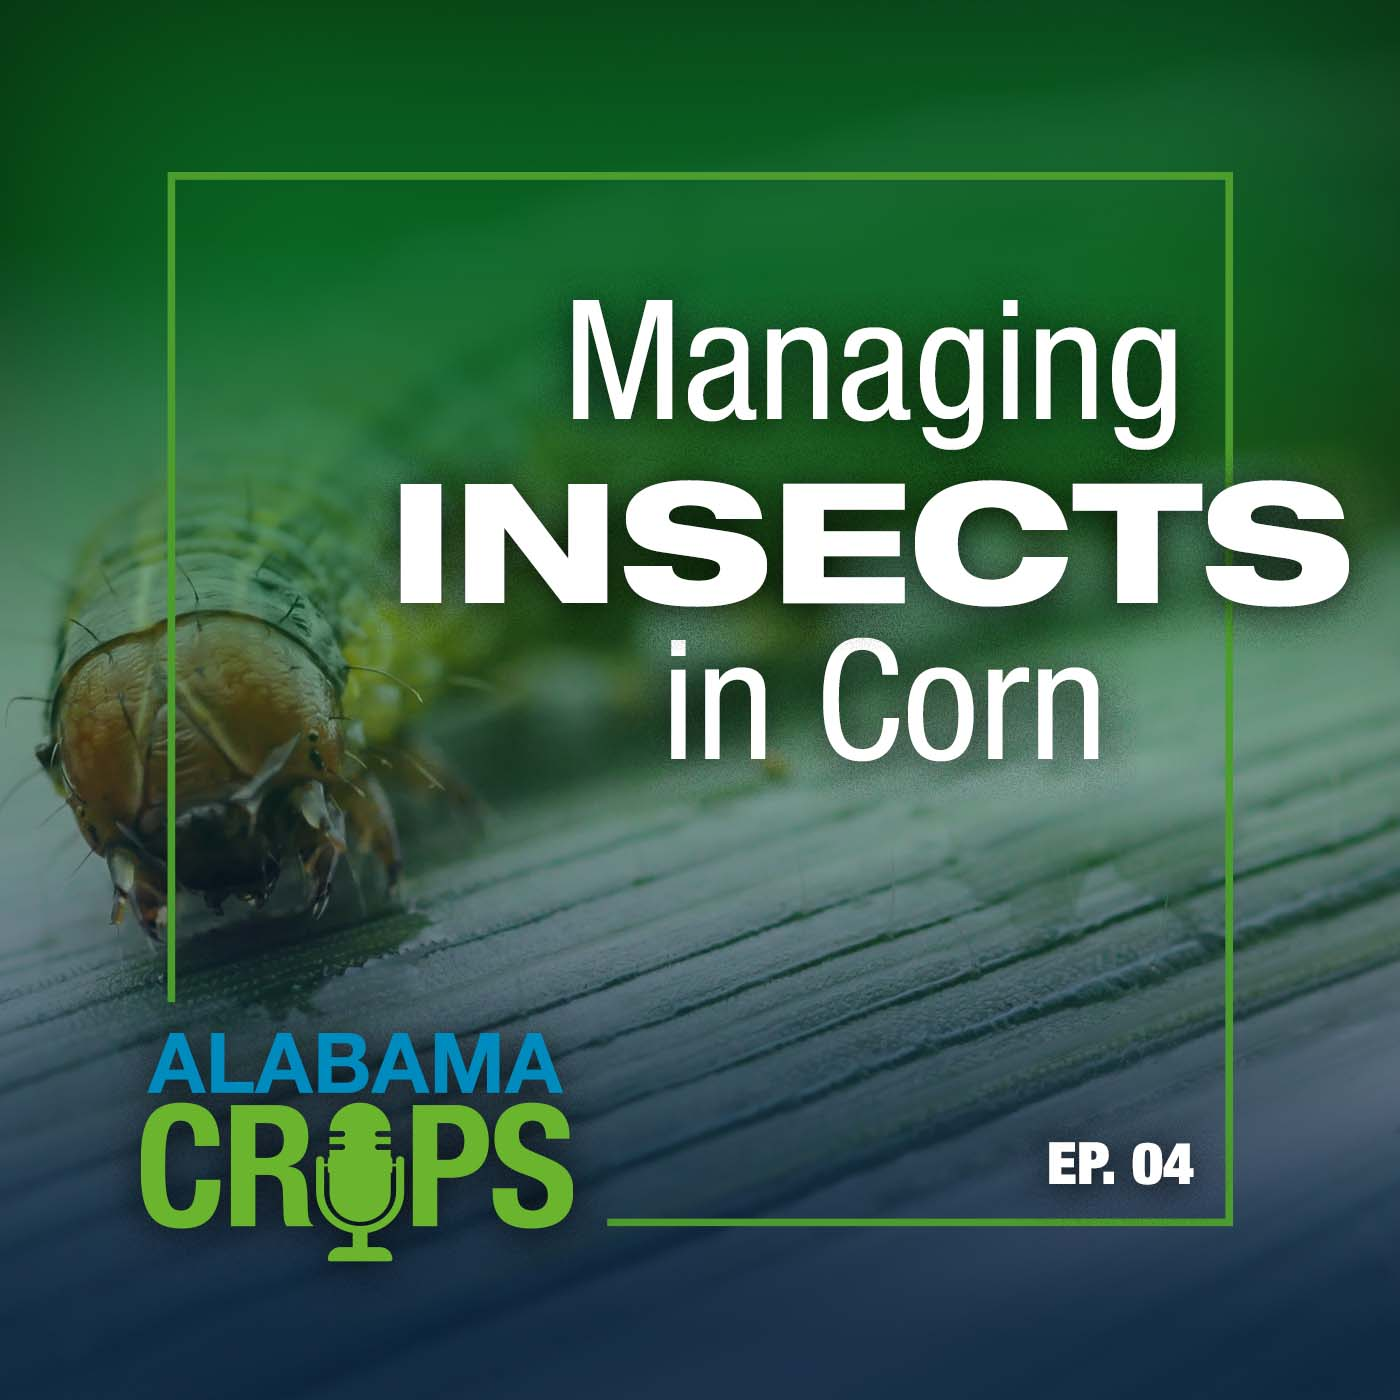 Managing Insects in Corn Alabama Crops Episode 4